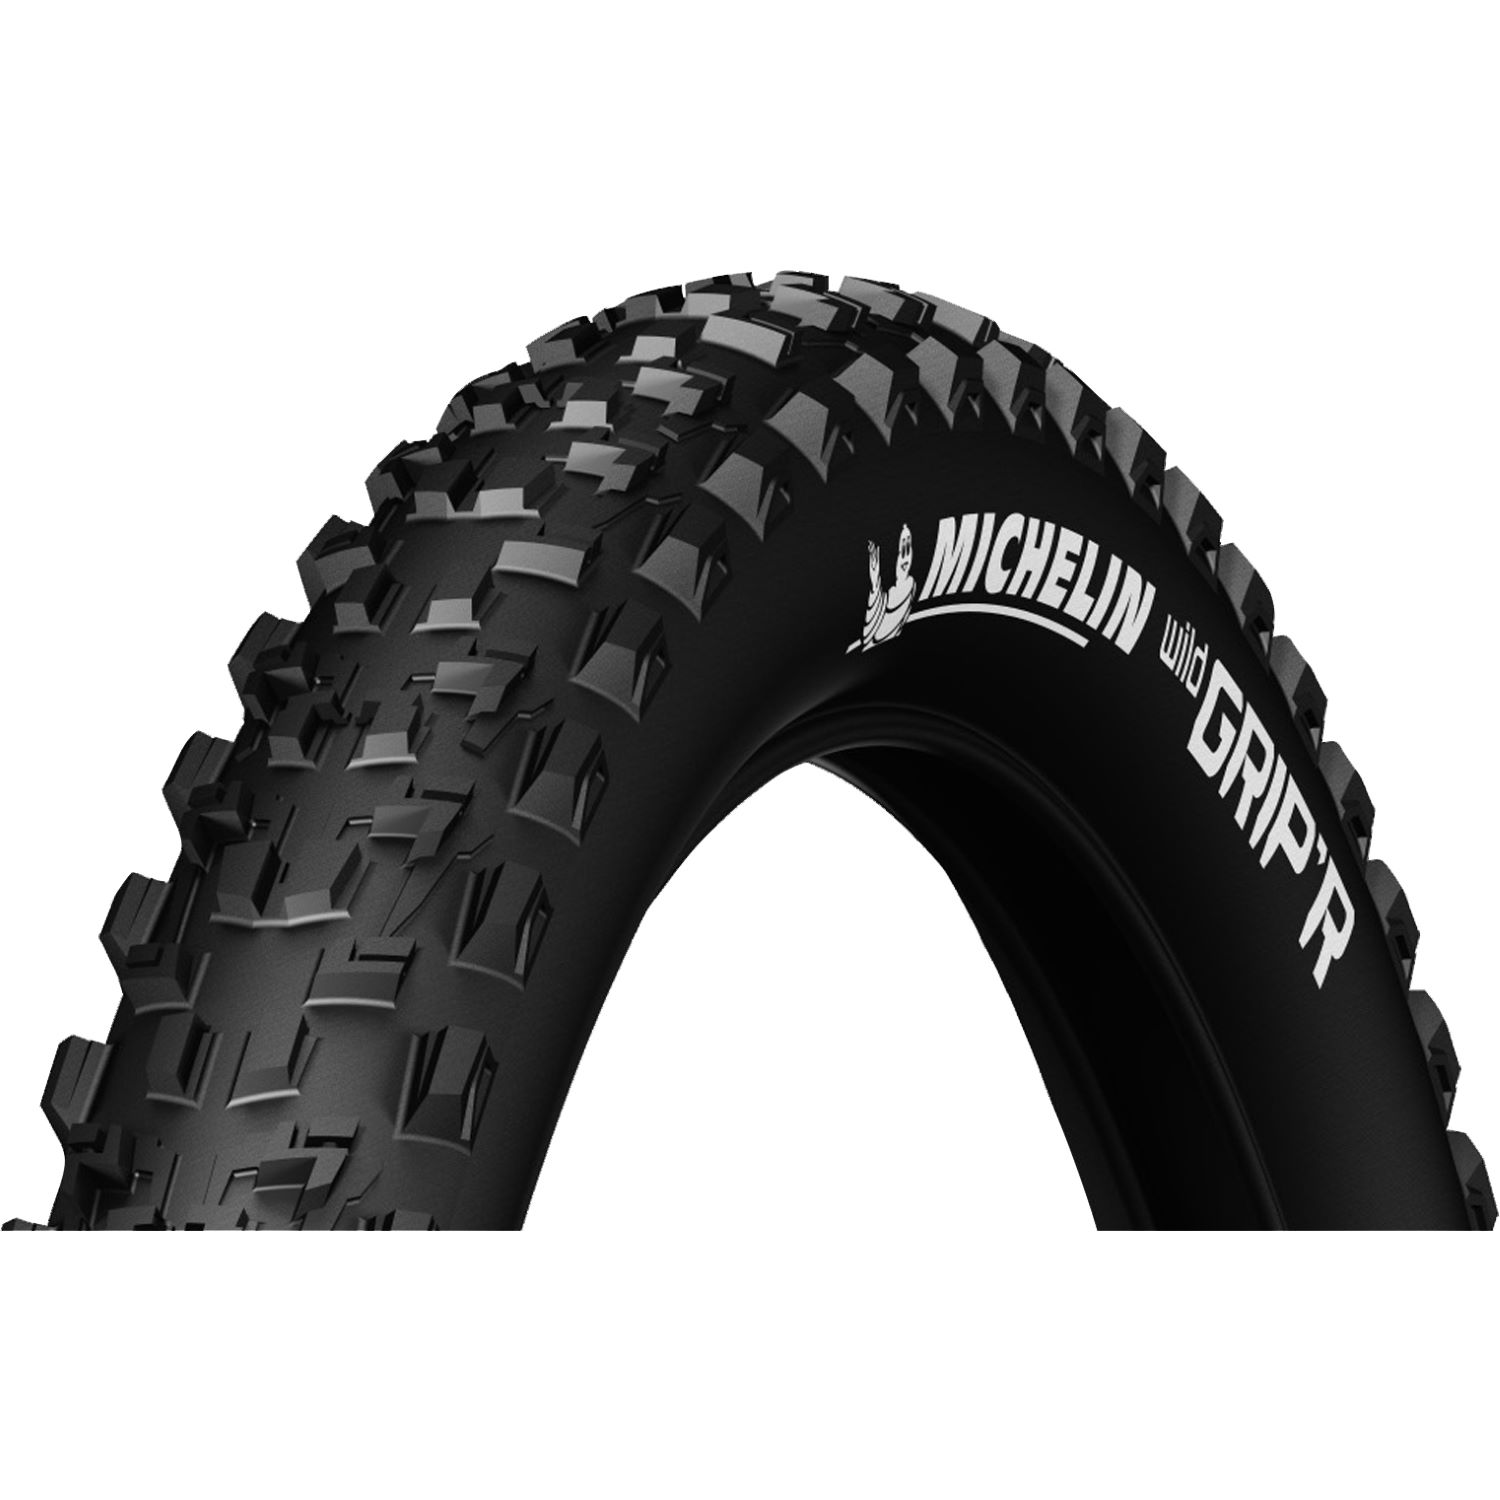 pneus vtt michelin wild grip 39 r folding mtb tyre wiggle france. Black Bedroom Furniture Sets. Home Design Ideas